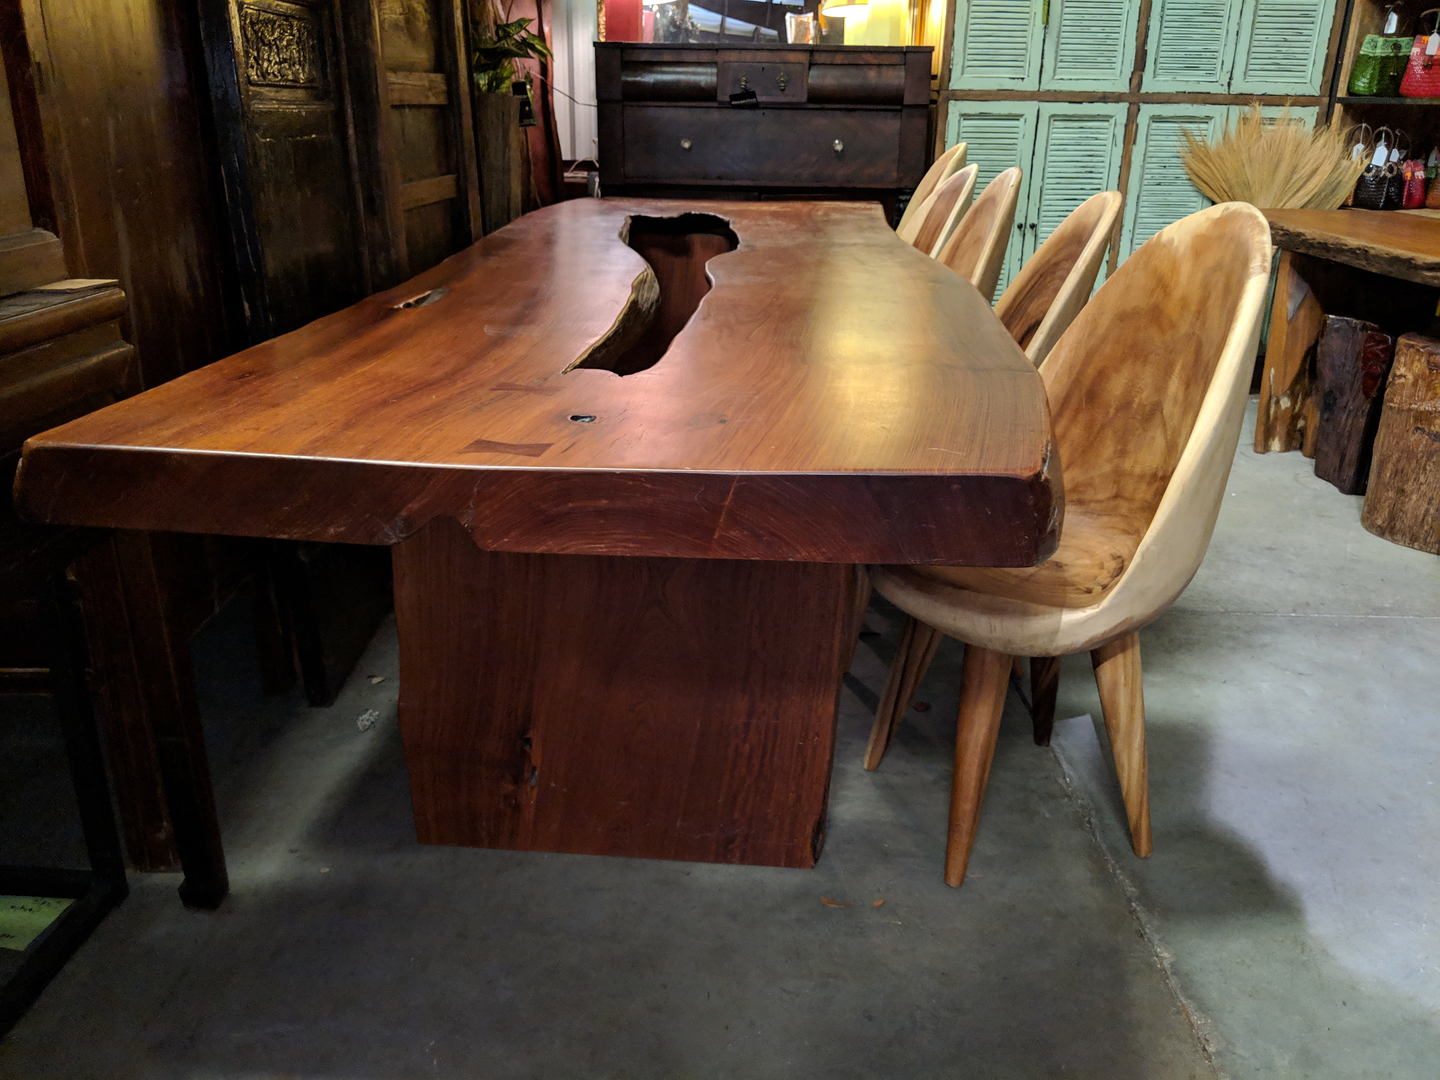 Functional Art, Sustainable Wood Furniture - Decor Direct